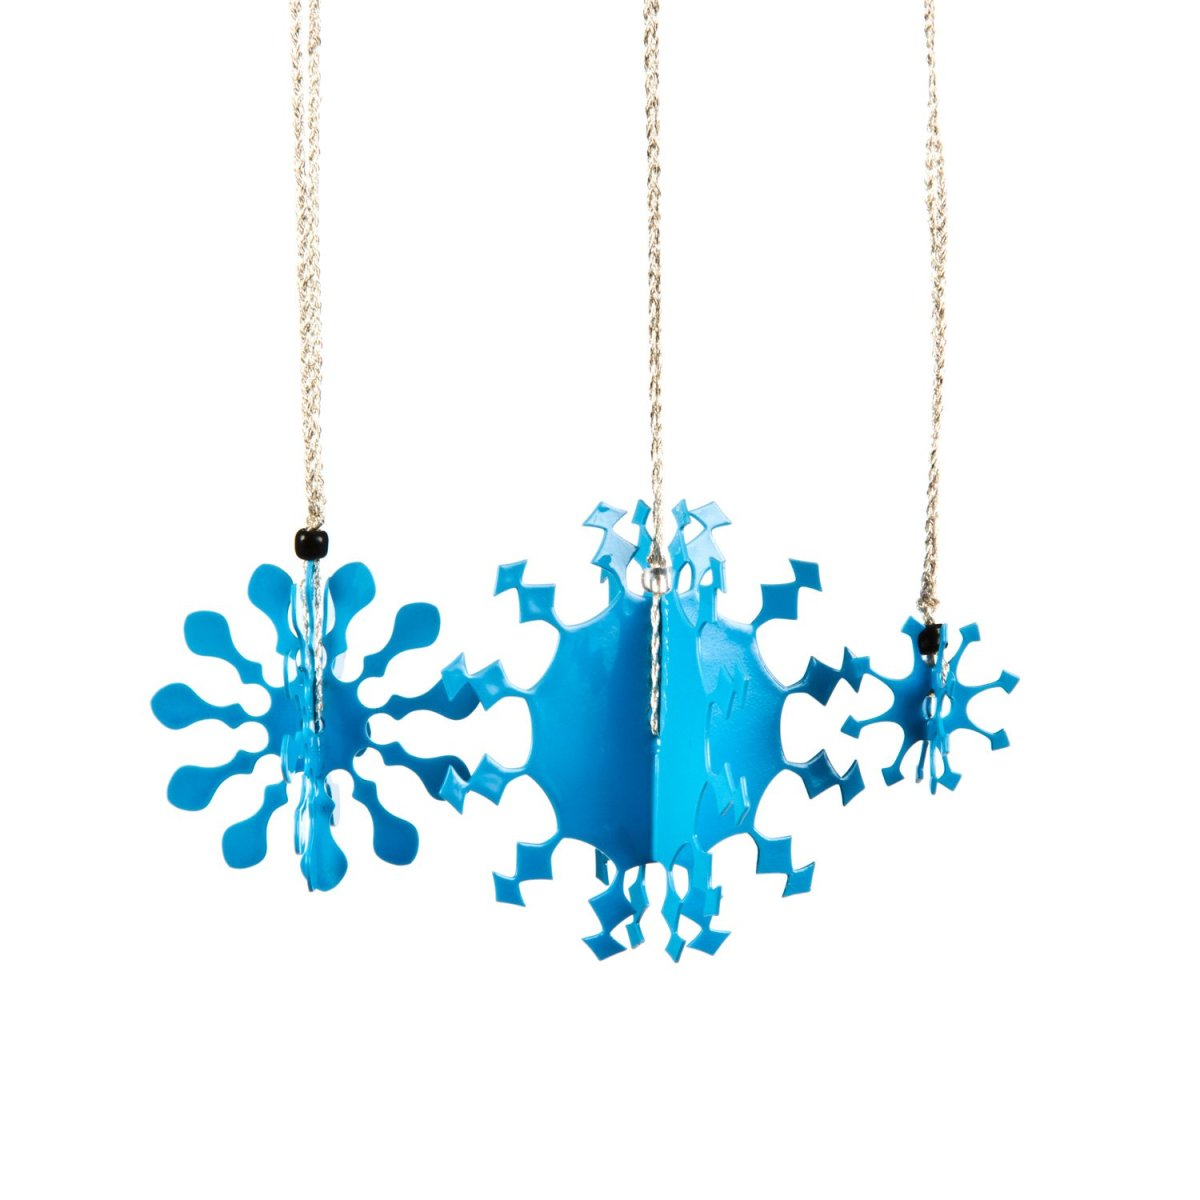 Three 3D metal snowflakes coated in blue enamel paint for hanging on the Christmas tree.